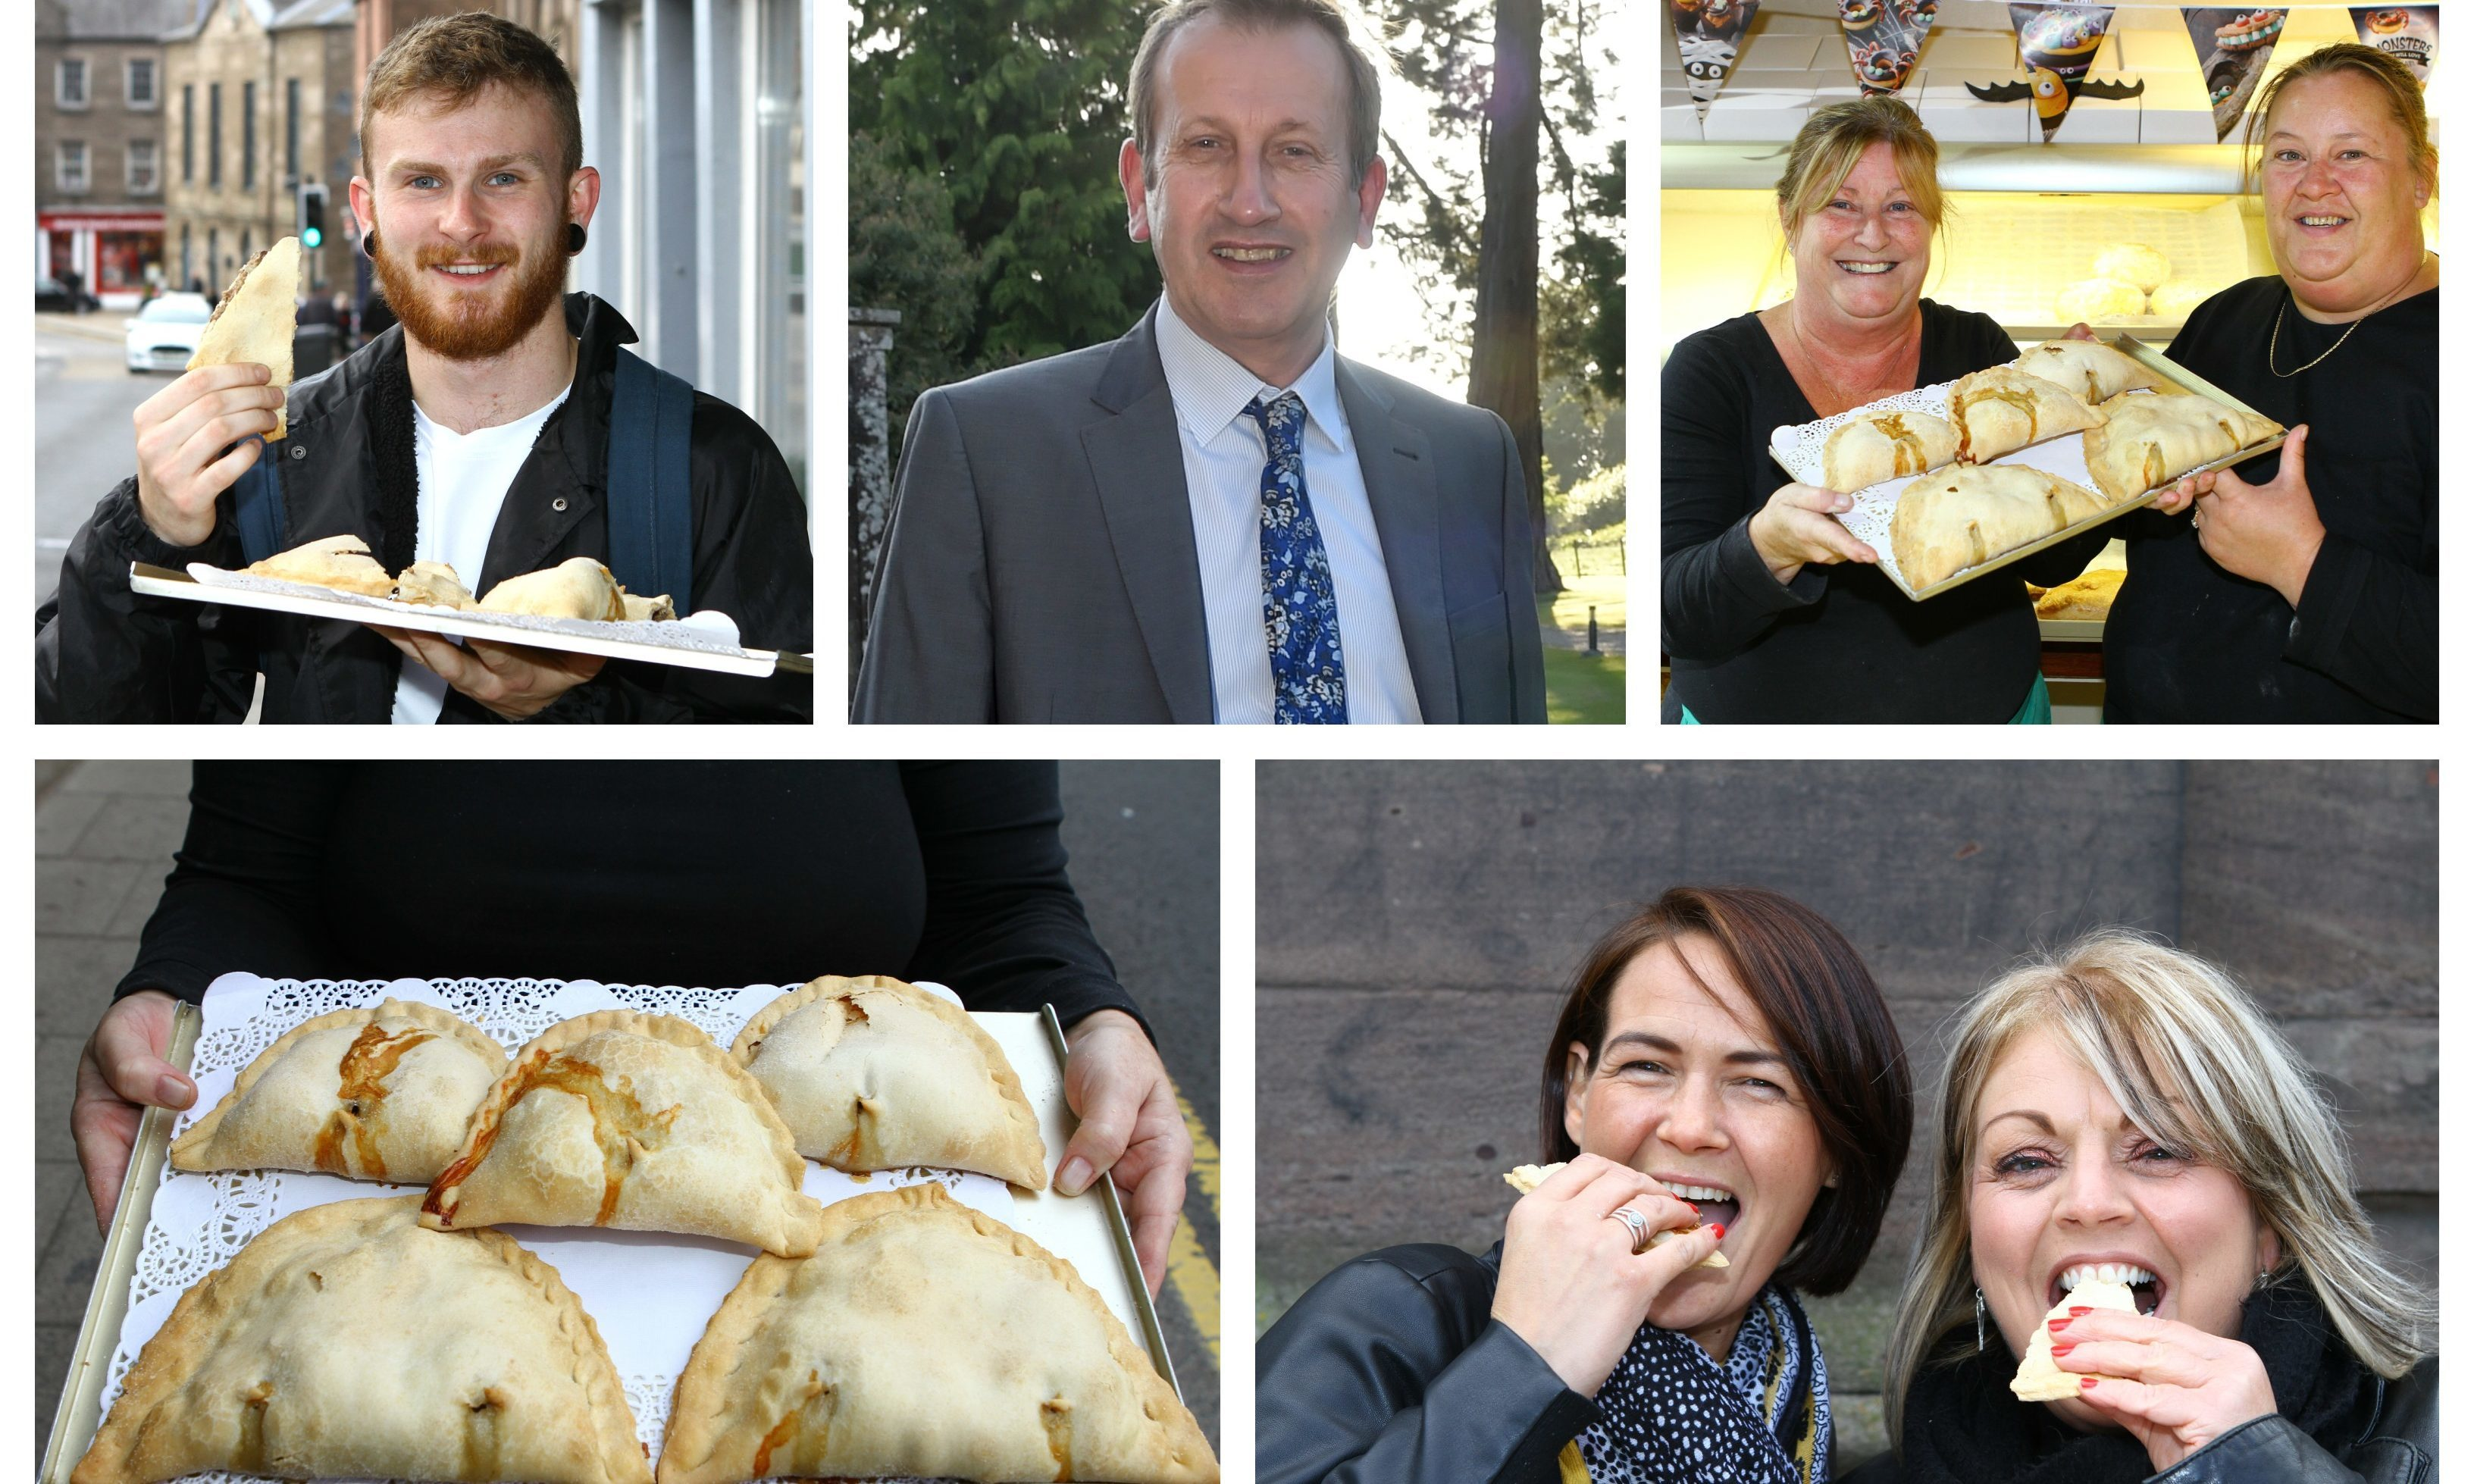 Locals have hit back at comments from councillor Bill Duff about the famous Forfar Bridie.